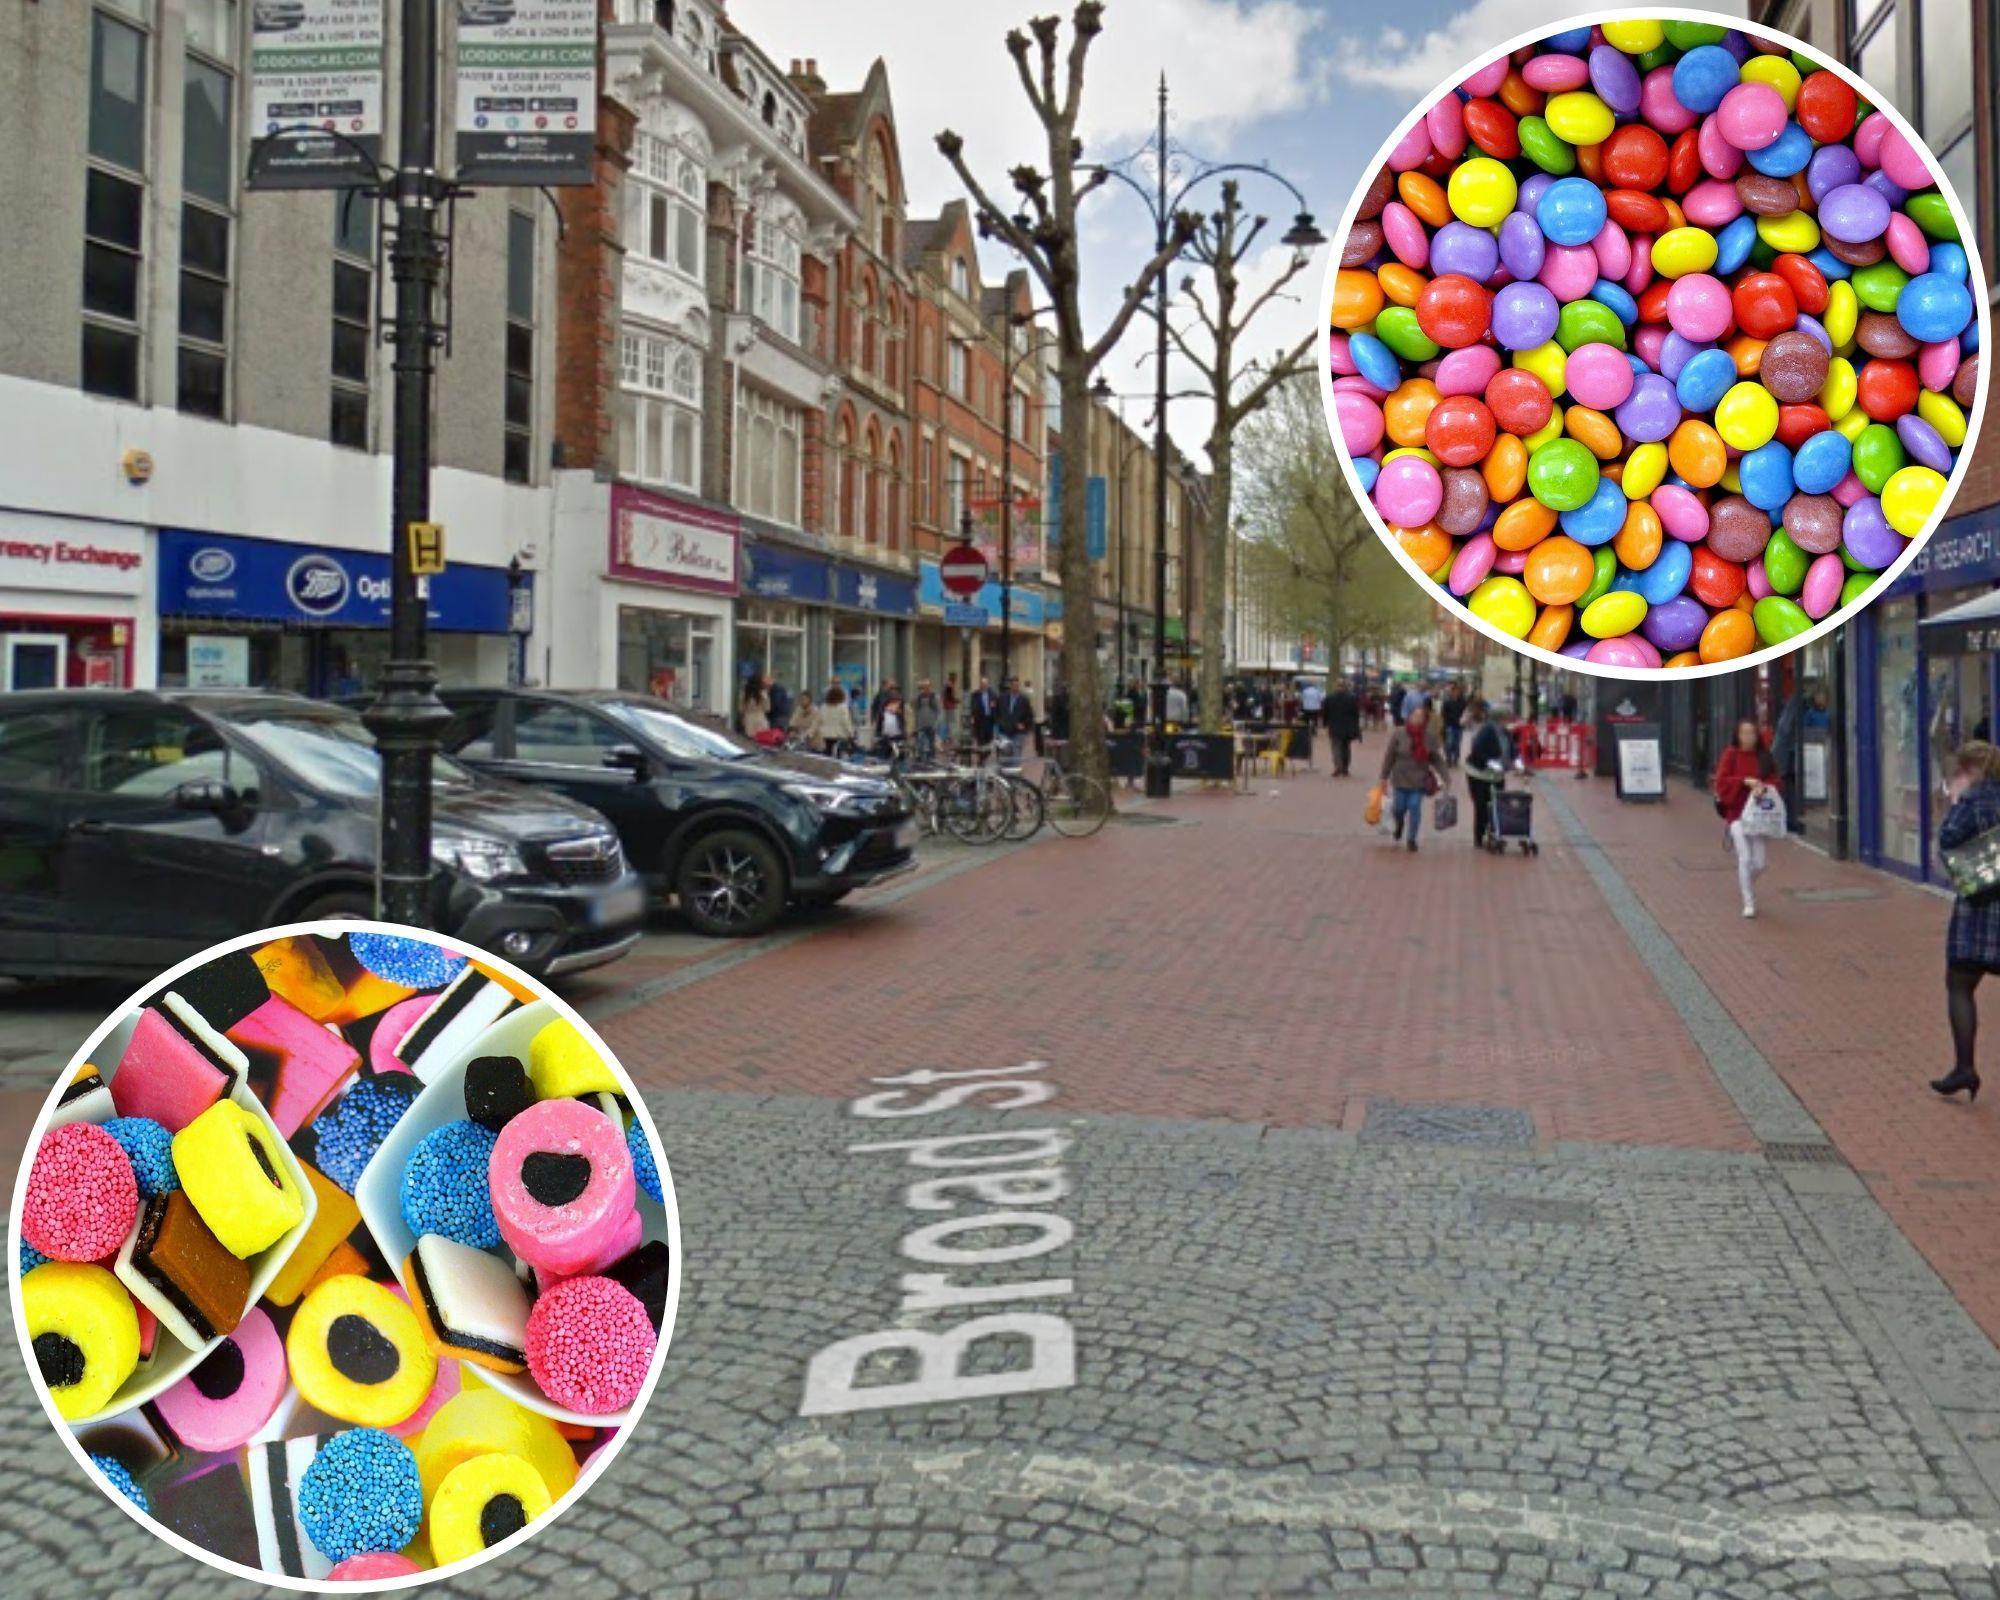 New retro sweet shop could soon be opening in Reading